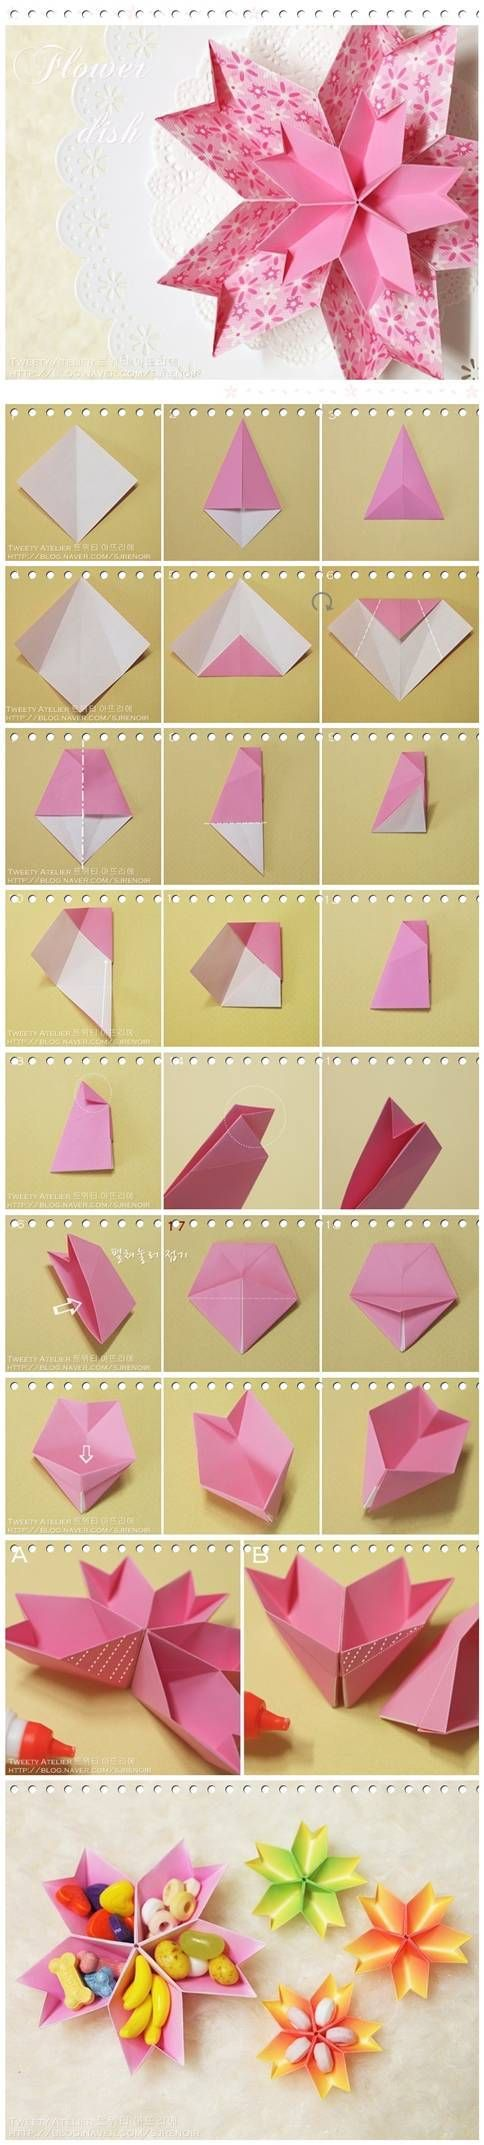 The 89 Best Images About Origami On Pinterest Crafts Christmas